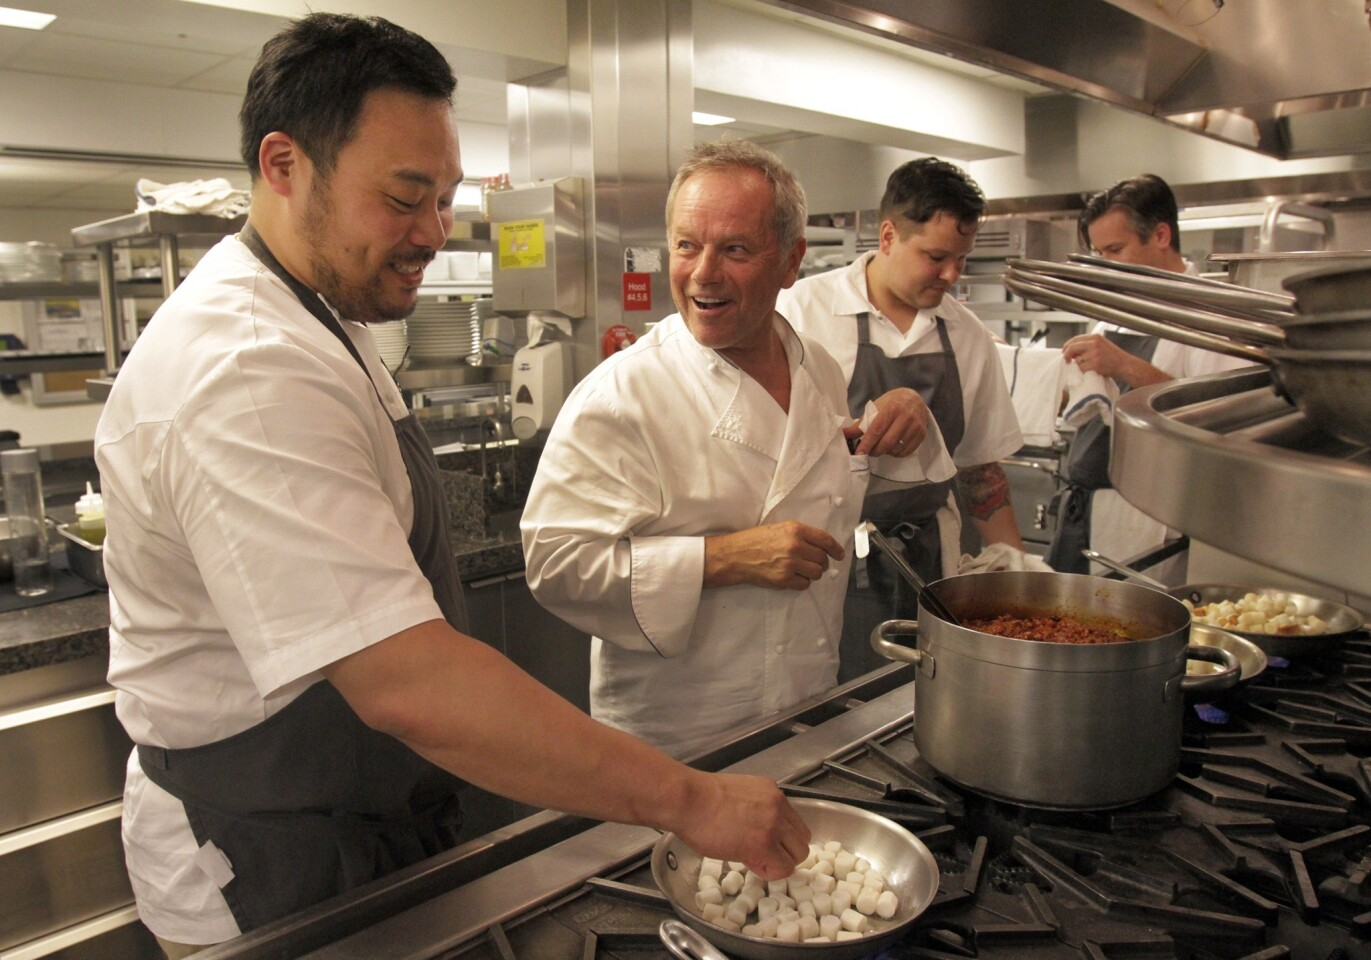 Chefs David Chang, left, and Wolfgang Puck in the kitchen at the Hotel Bel-Air in Beverly Hills.